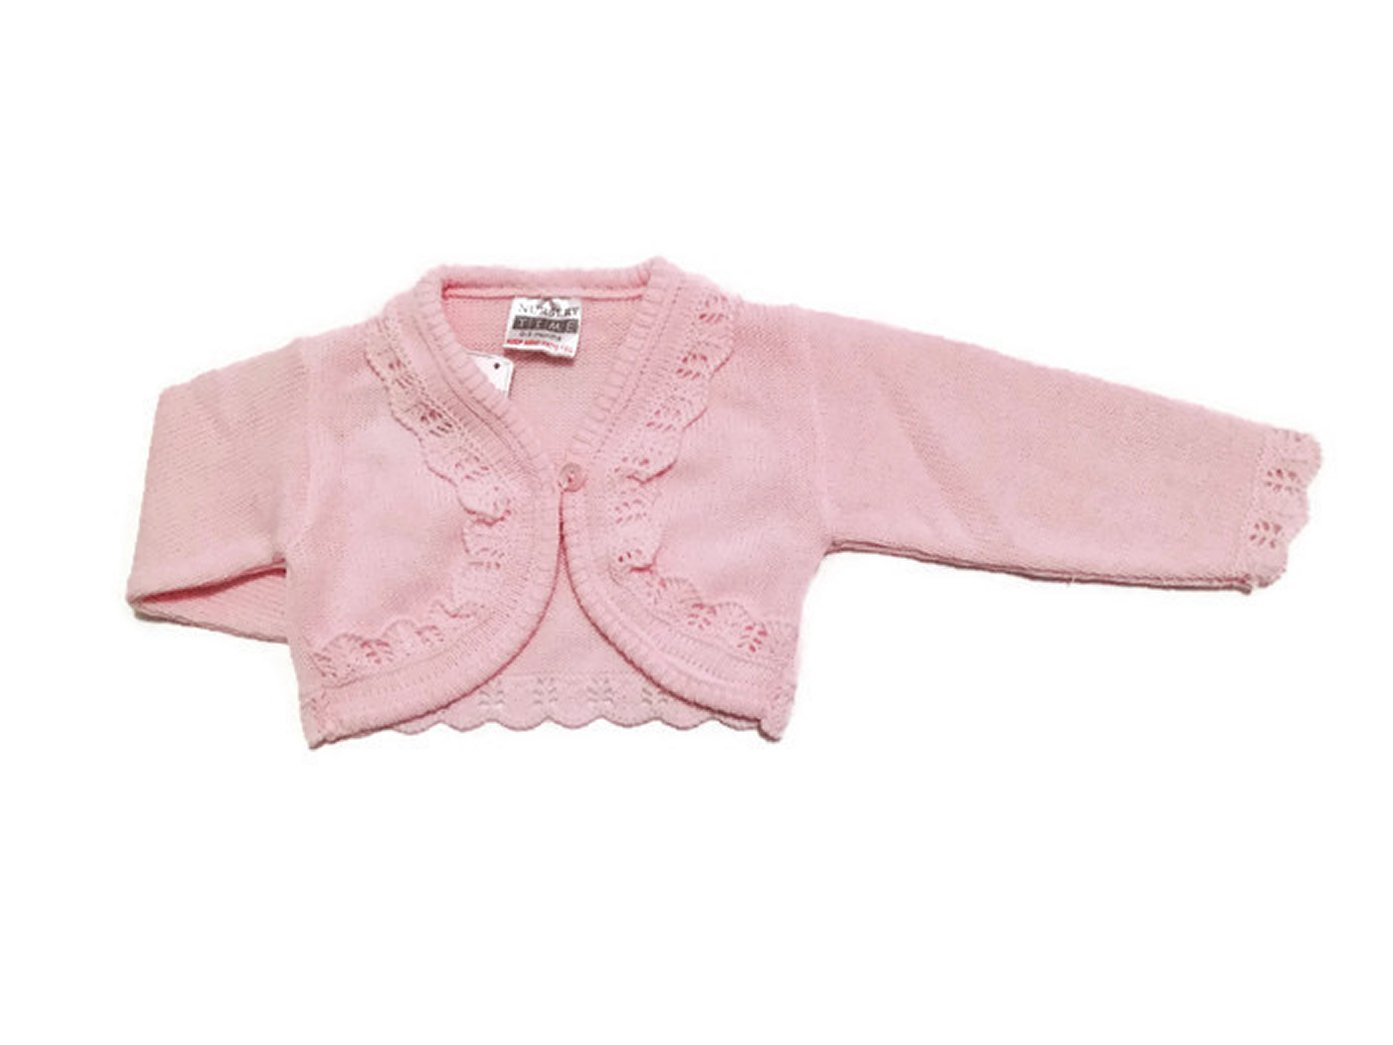 Baby Girls Bolero Fancy Cardigan Shrug 0 - 24 months (3-6 Months, Pink)